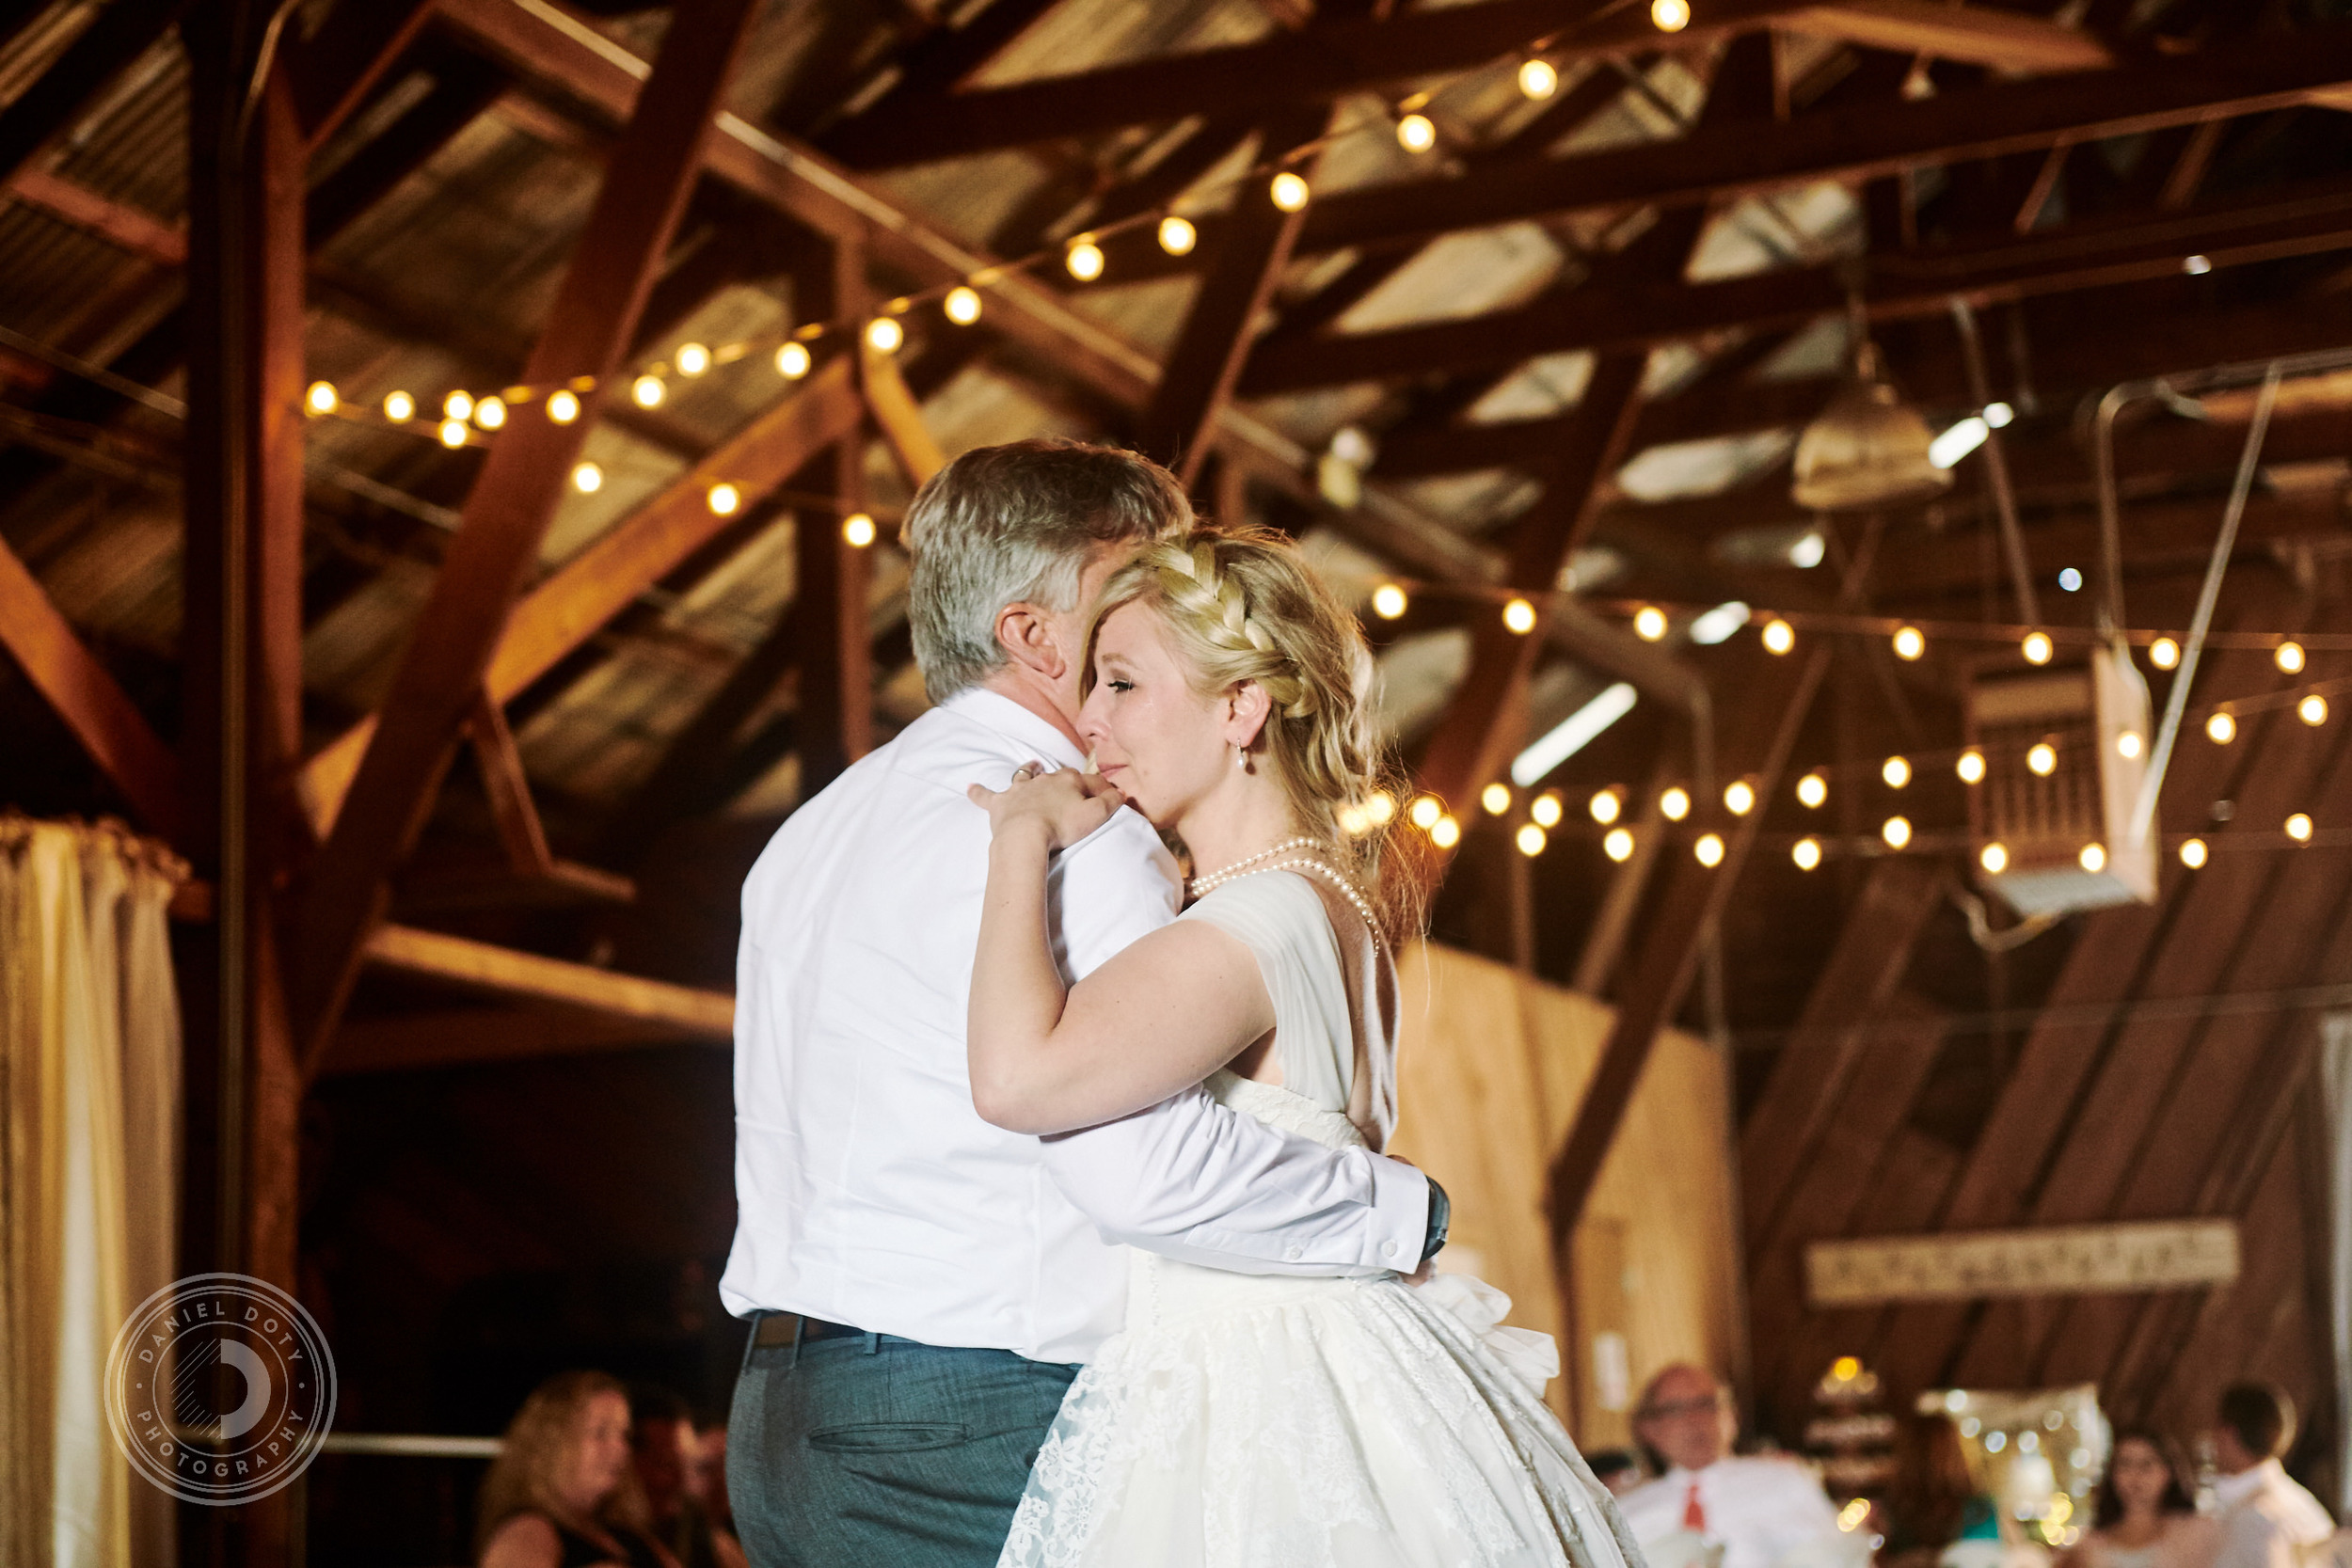 Daniel Doty Photography Erin Colin SoCal Wedding Photographer Strathearn 178.jpg